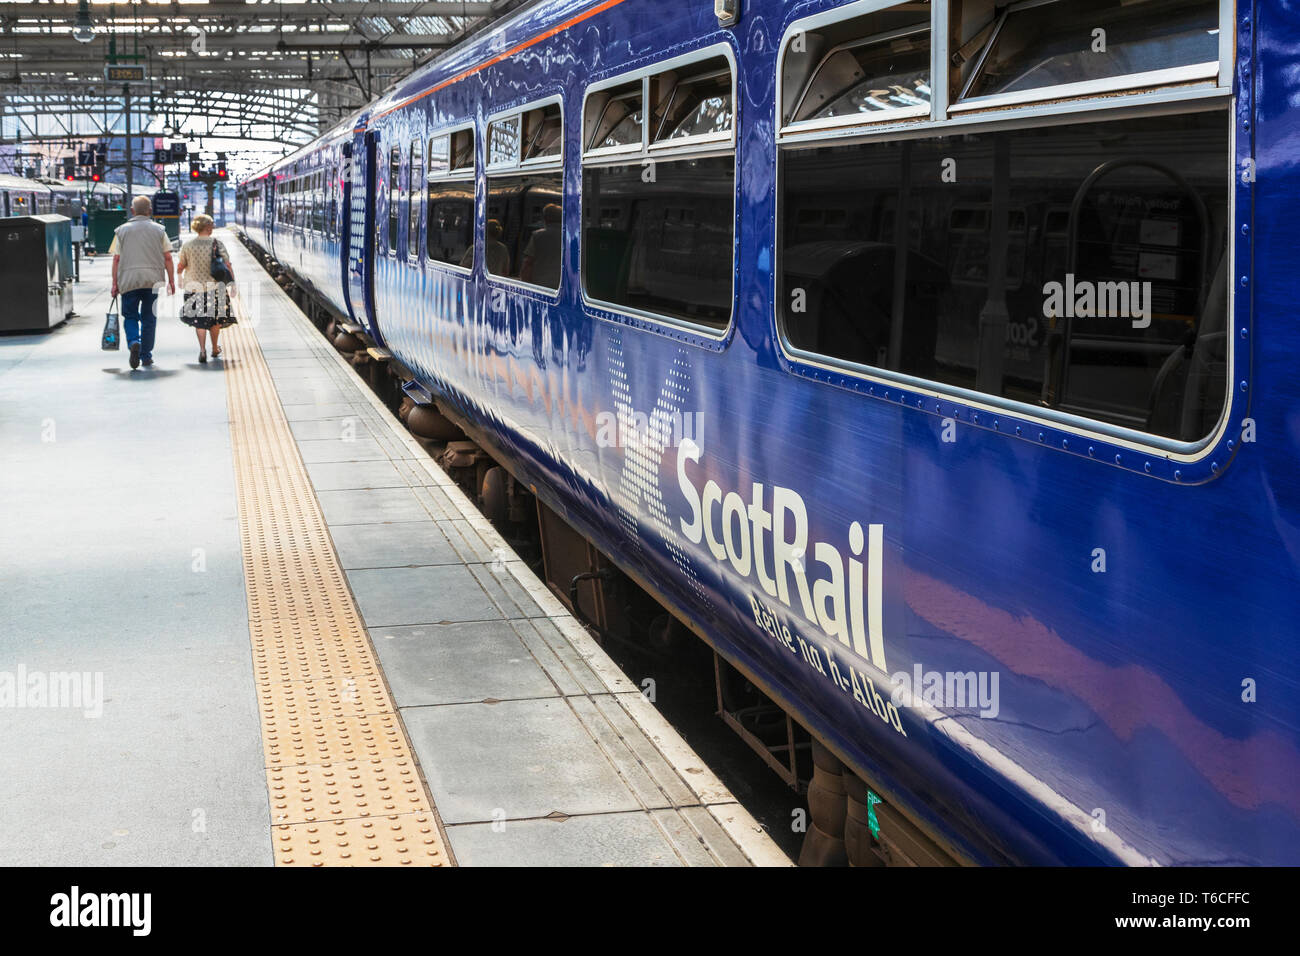 Scotrail train at a platform in Glasgow Central railway station, Glasgow, Scotland, UK - Stock Image